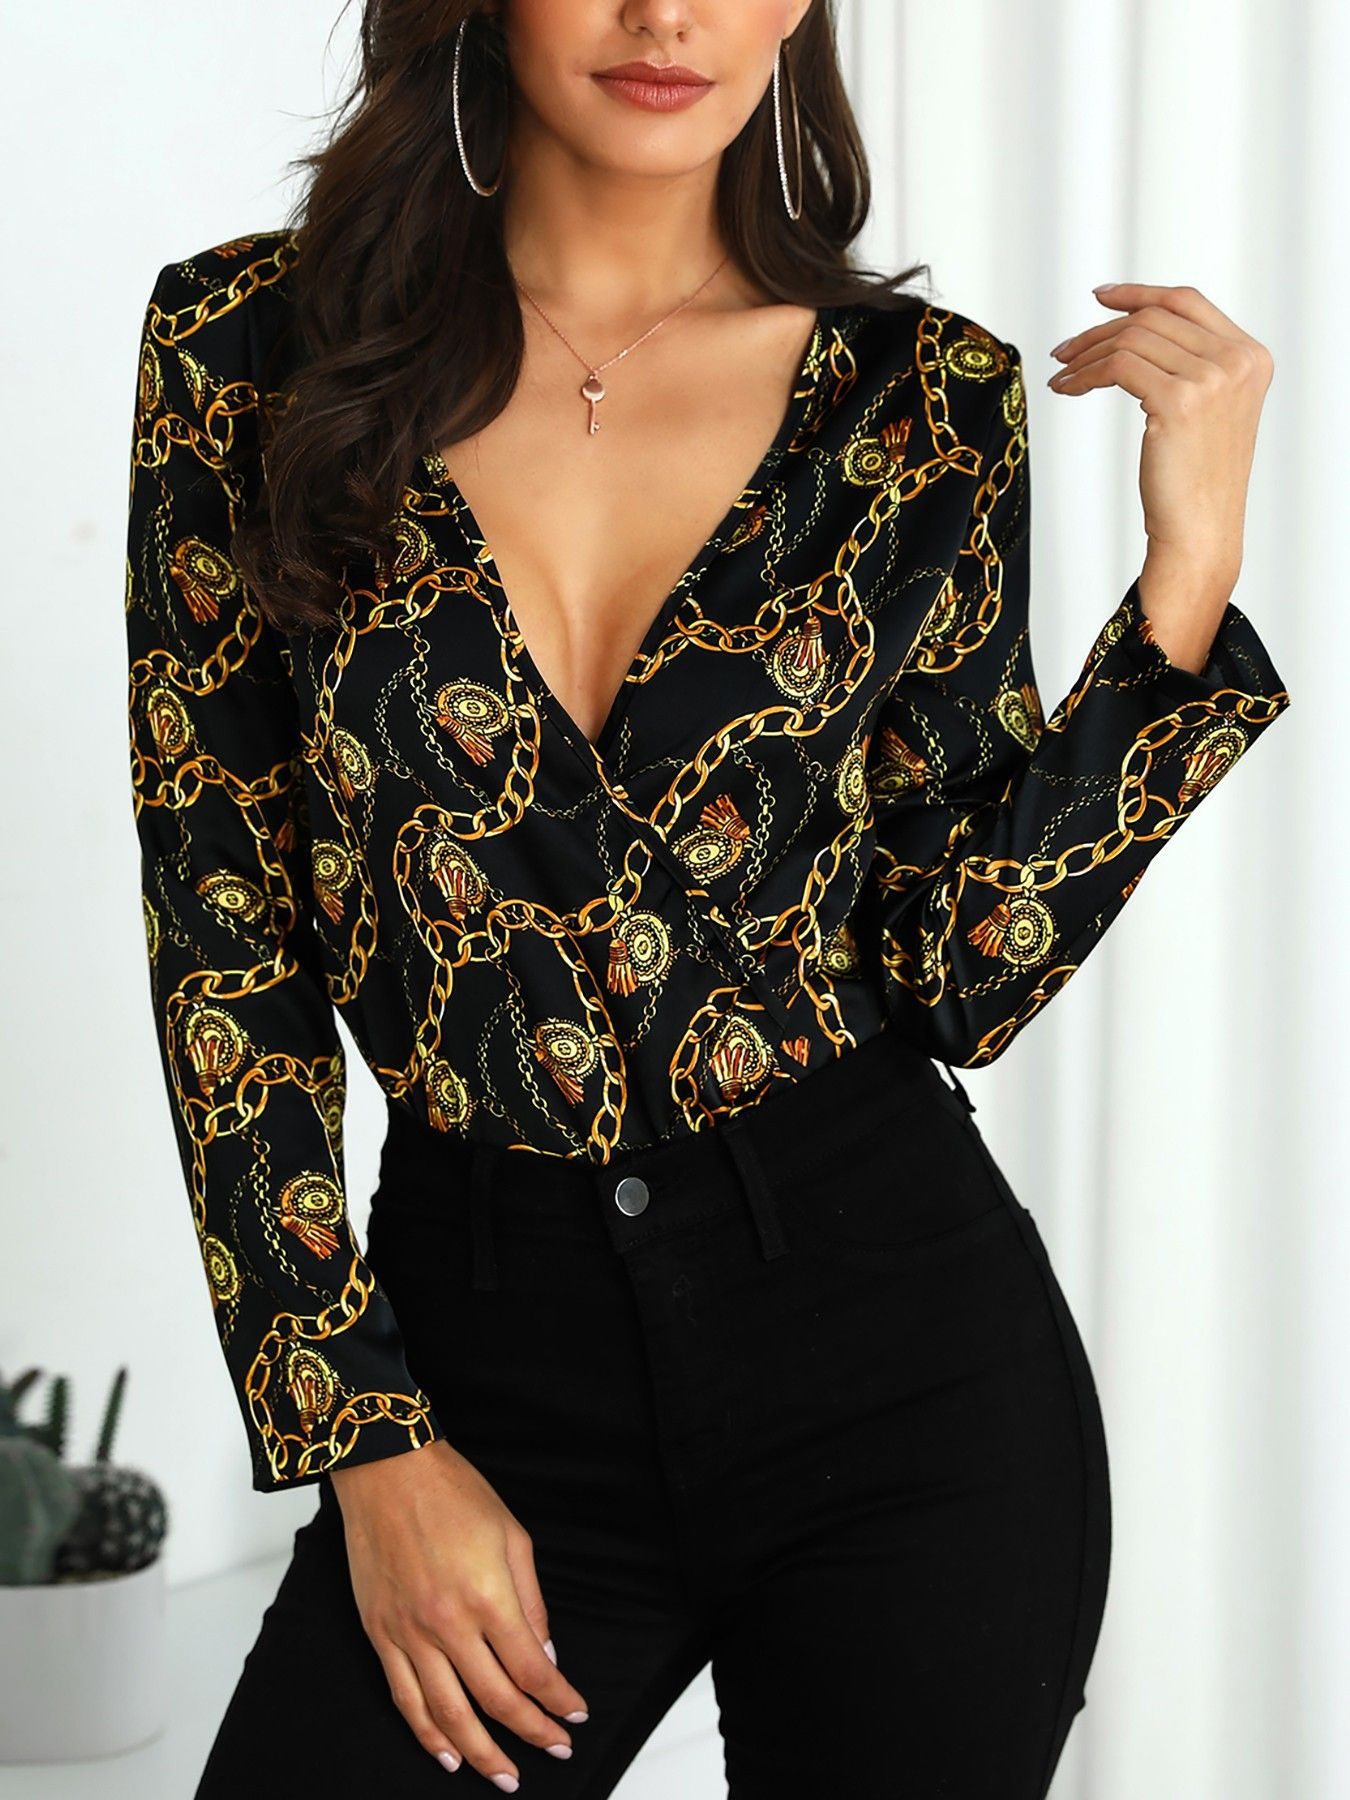 Chain Print V Neck Long Sleeve Blouse Long Sleeve Blouse Ladies Tops Blouses Fashion